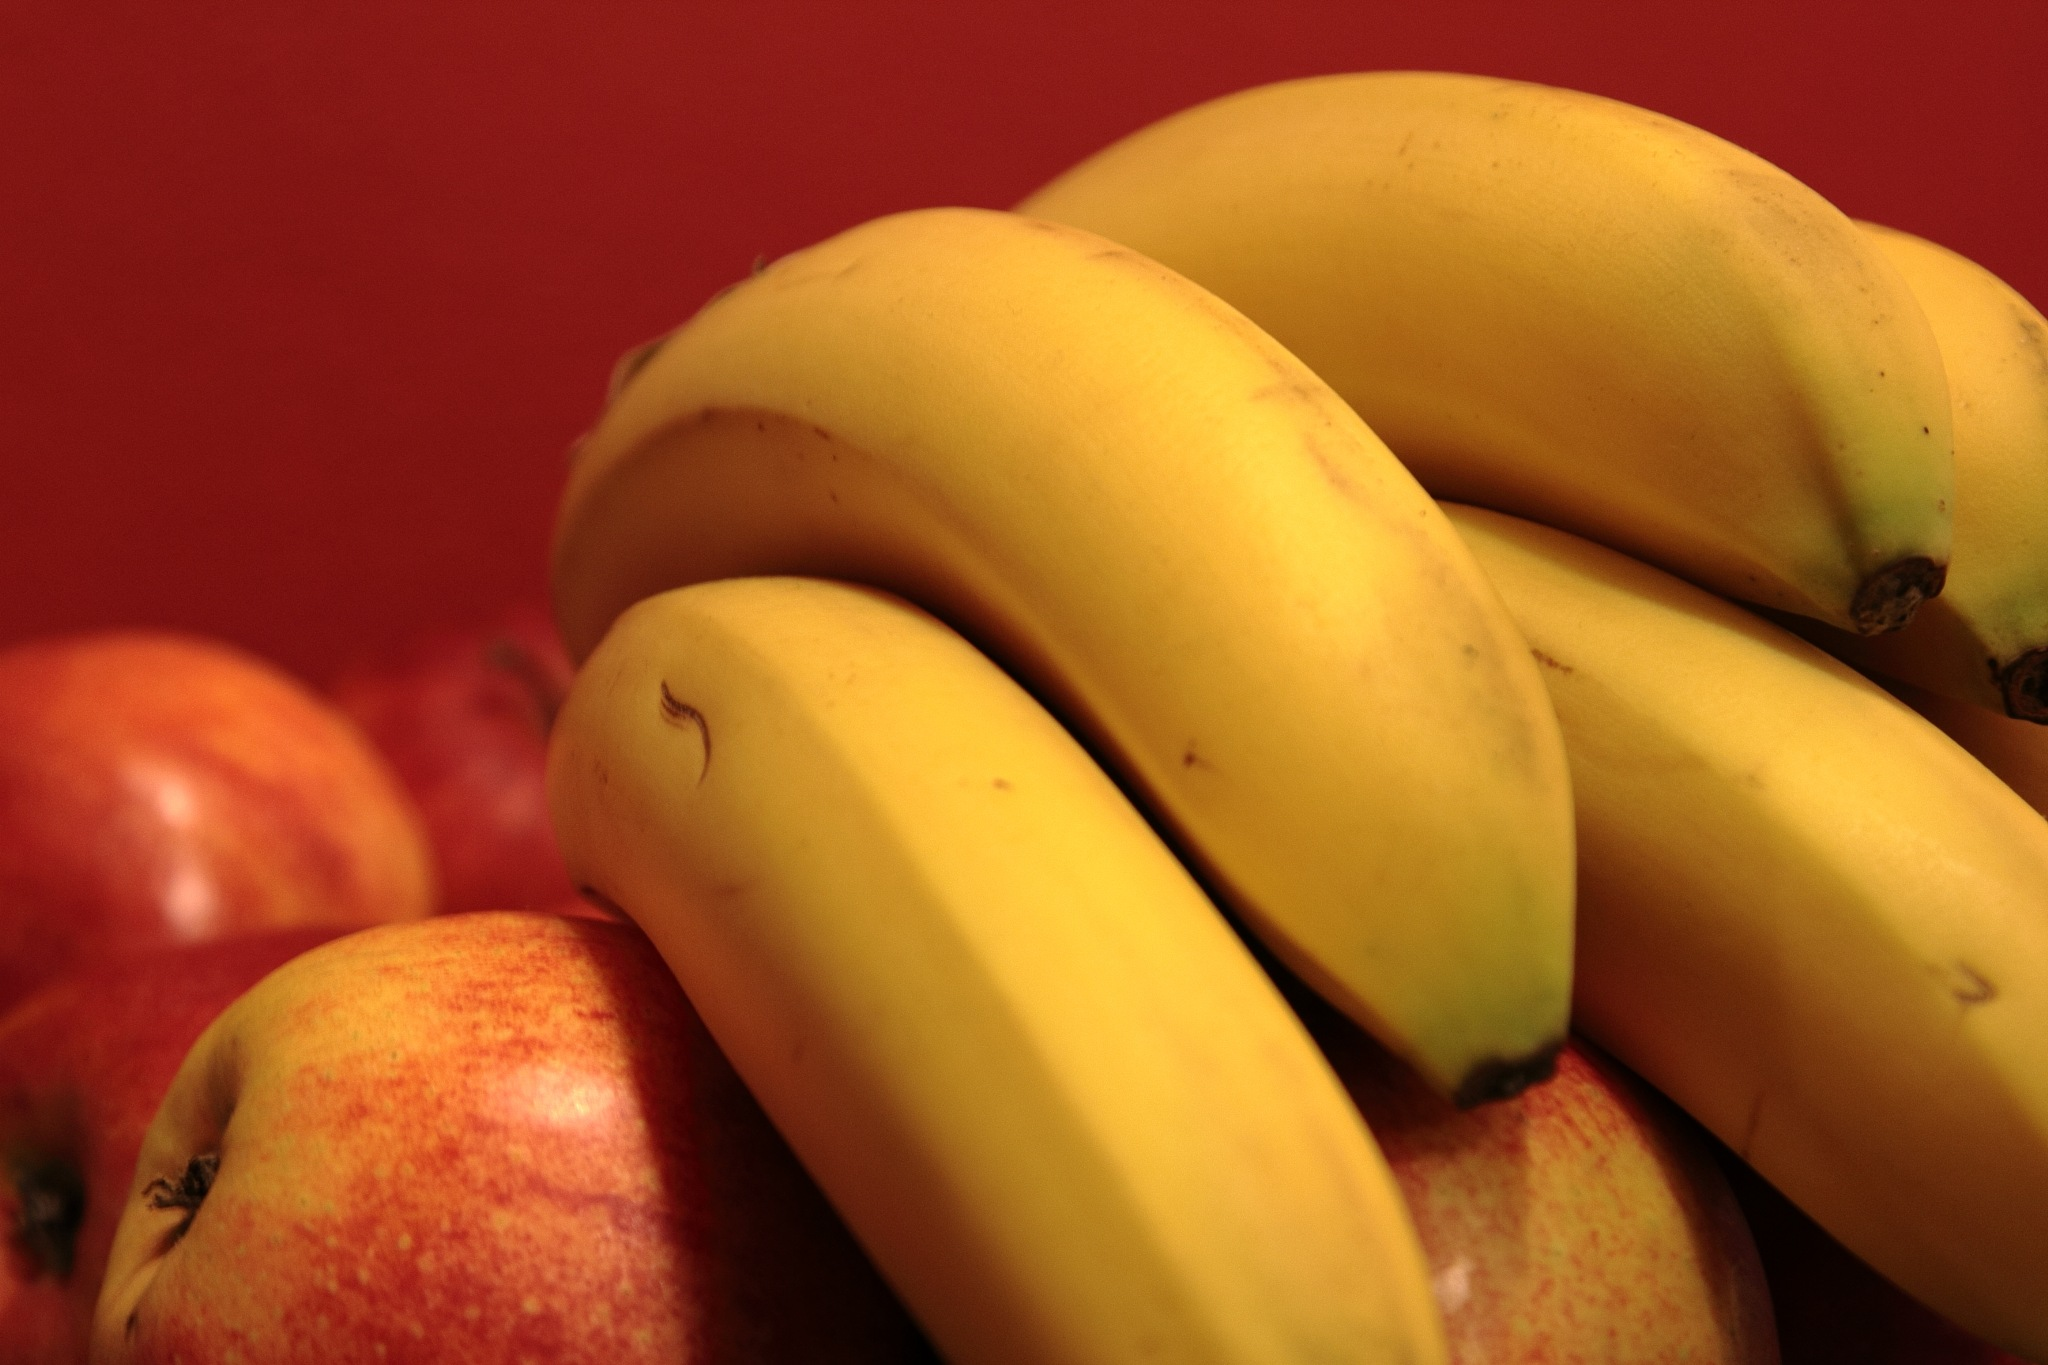 Bananas over apples in front of red wall - what a fruitful life by Thomas Lenz